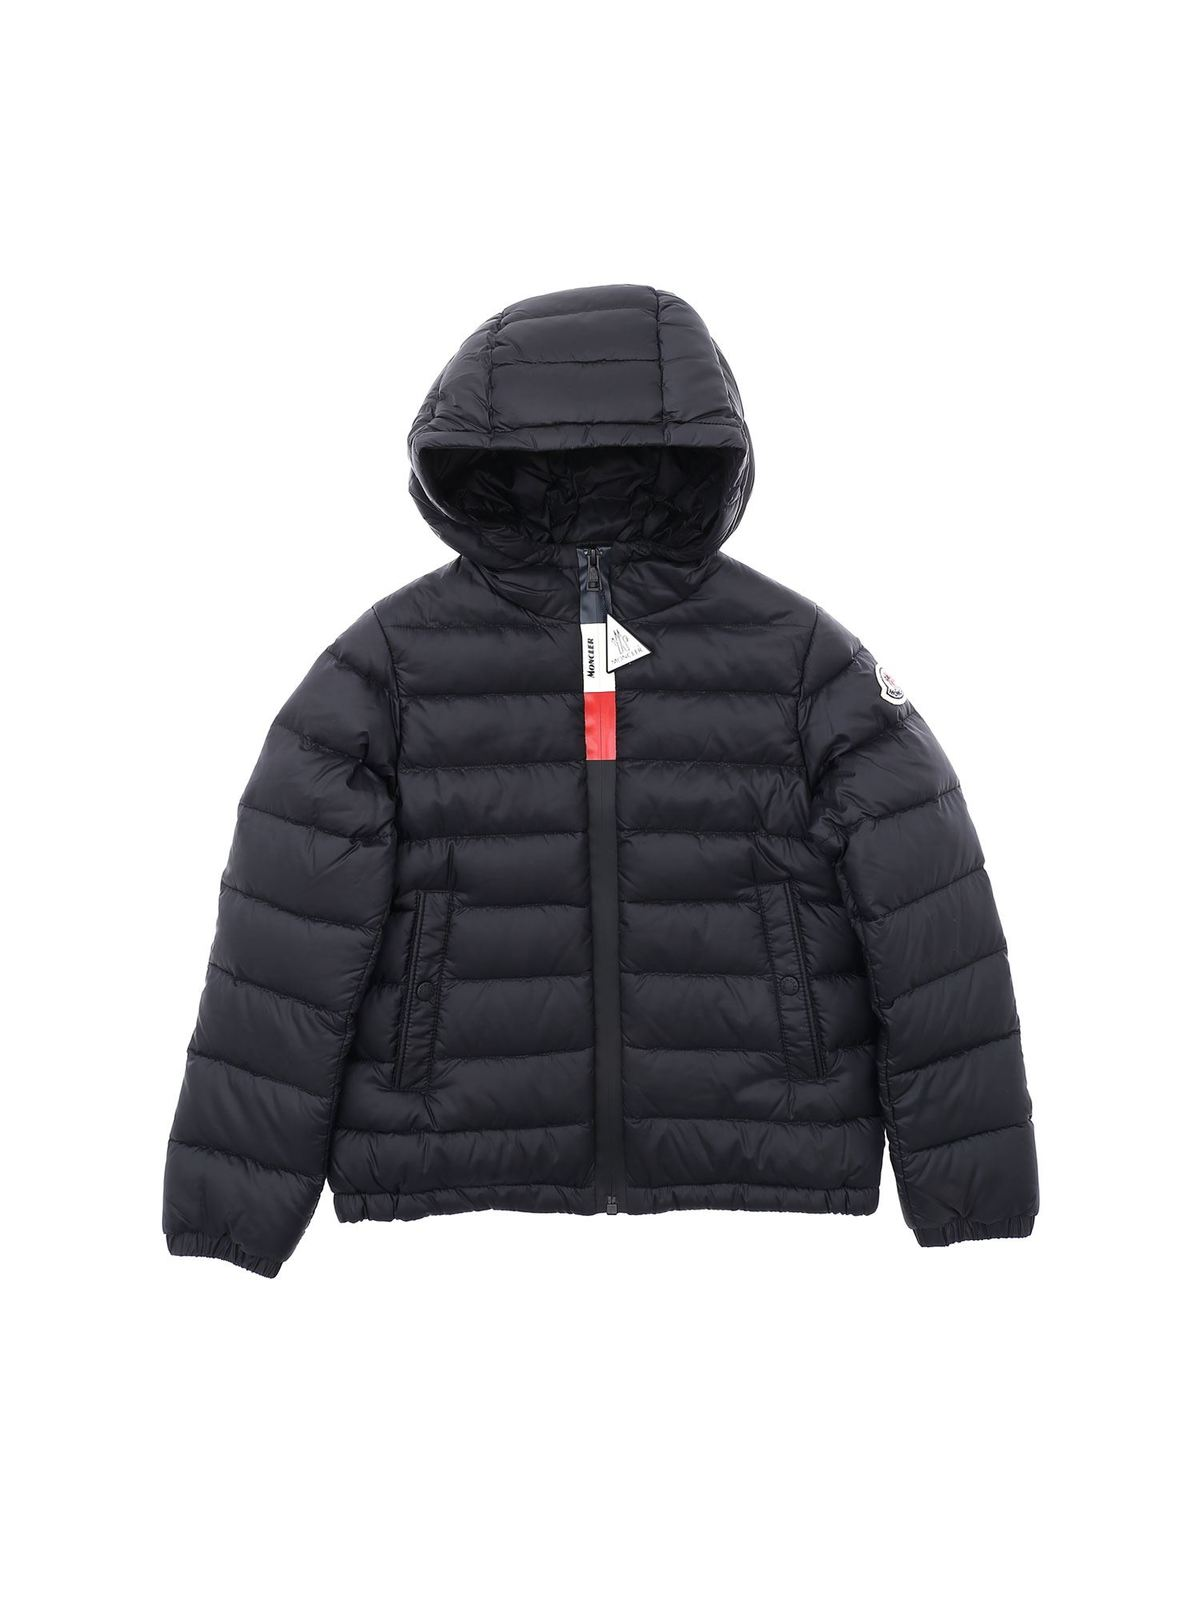 MONCLER JR ROOK BLACK DOWN JACKET WITH HOOD